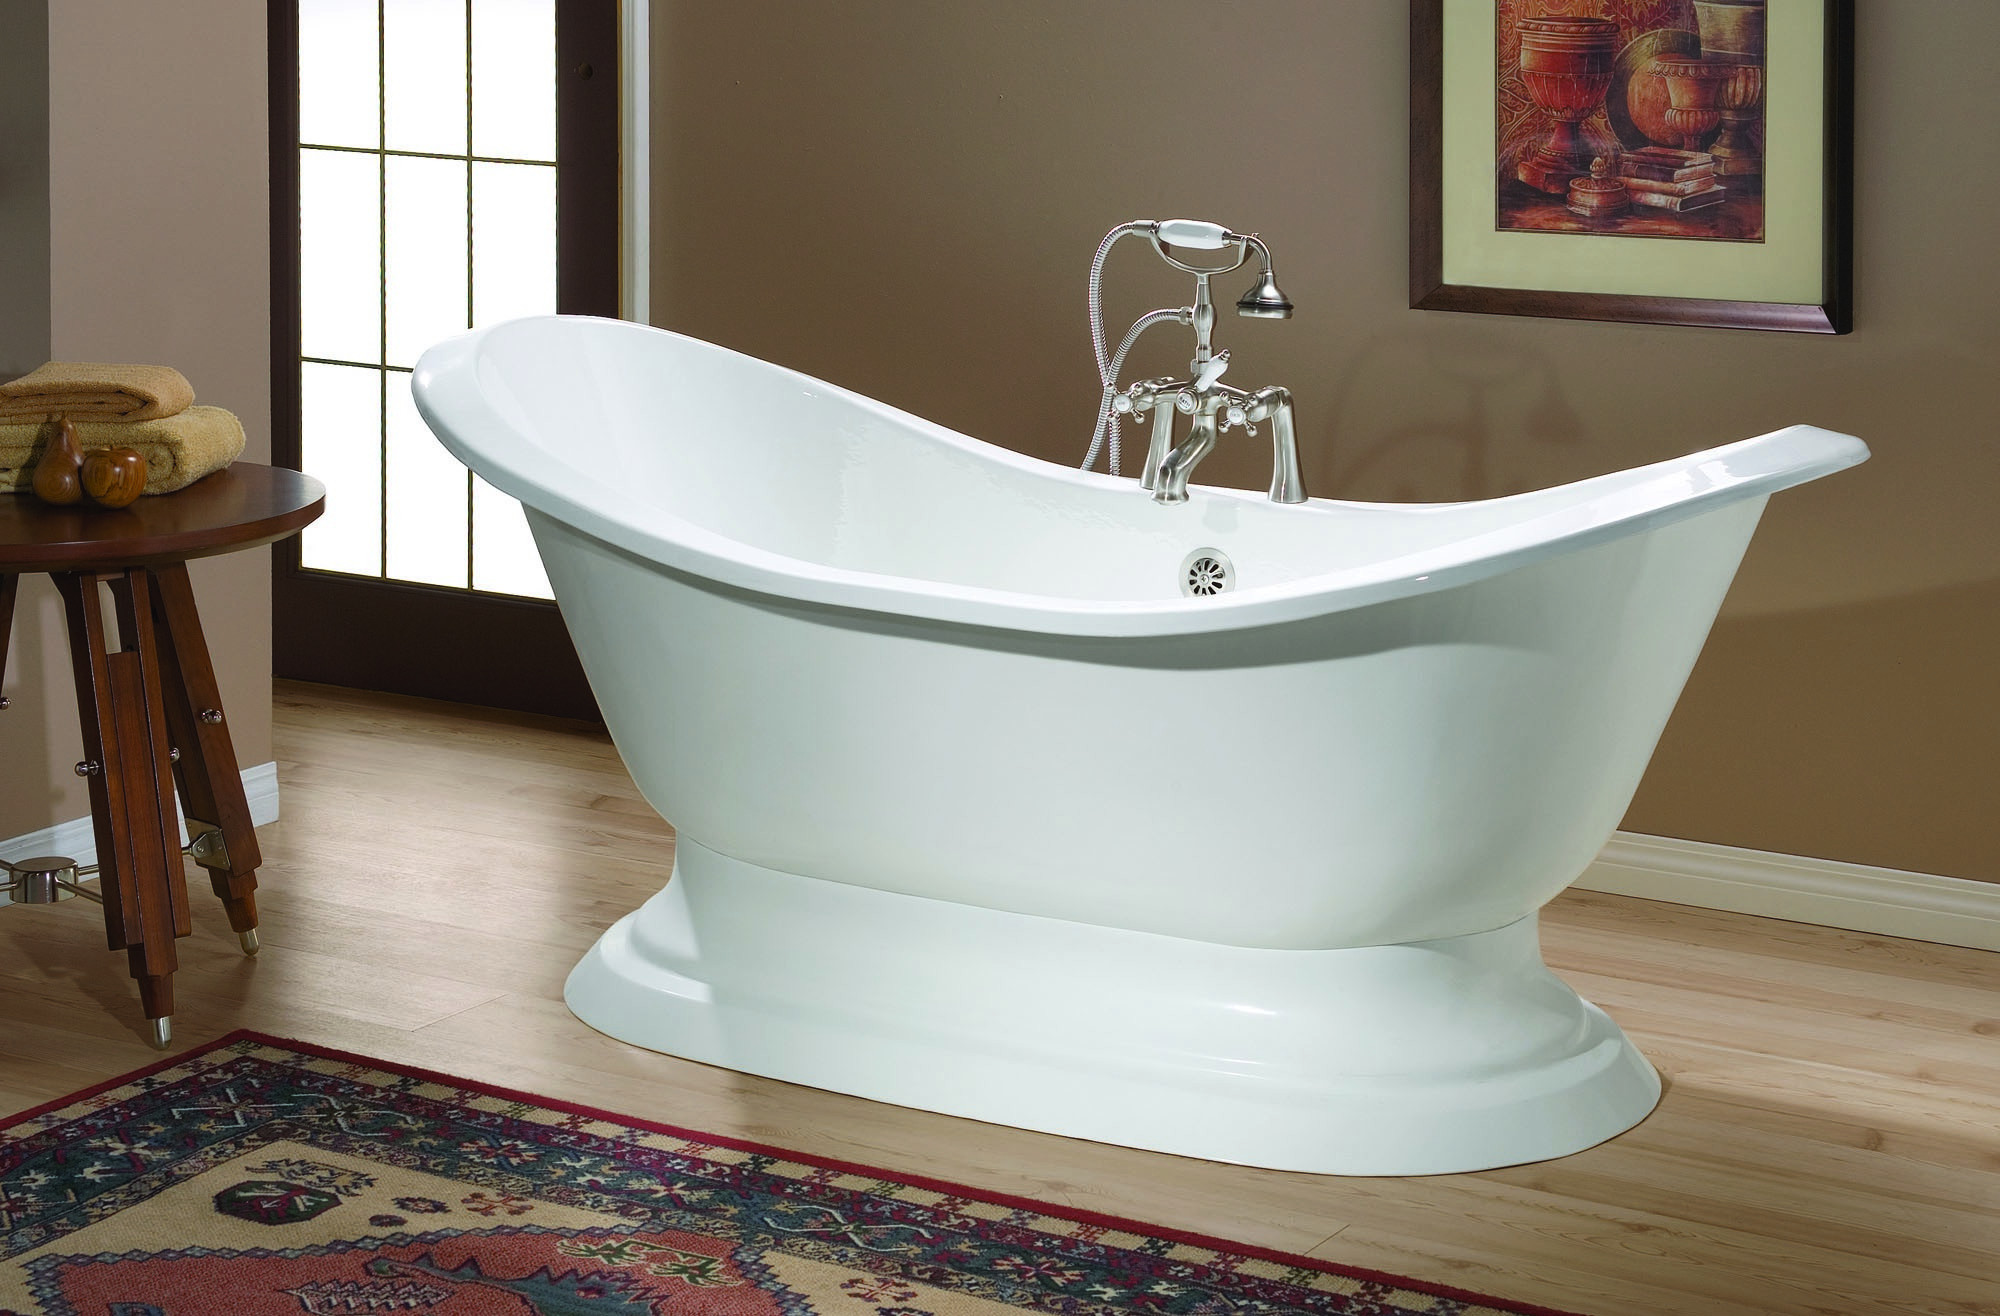 Cheviot 2153-BB-0 Regency Cast Iron Oval Bathtub in Biscuit with Pedestal Base